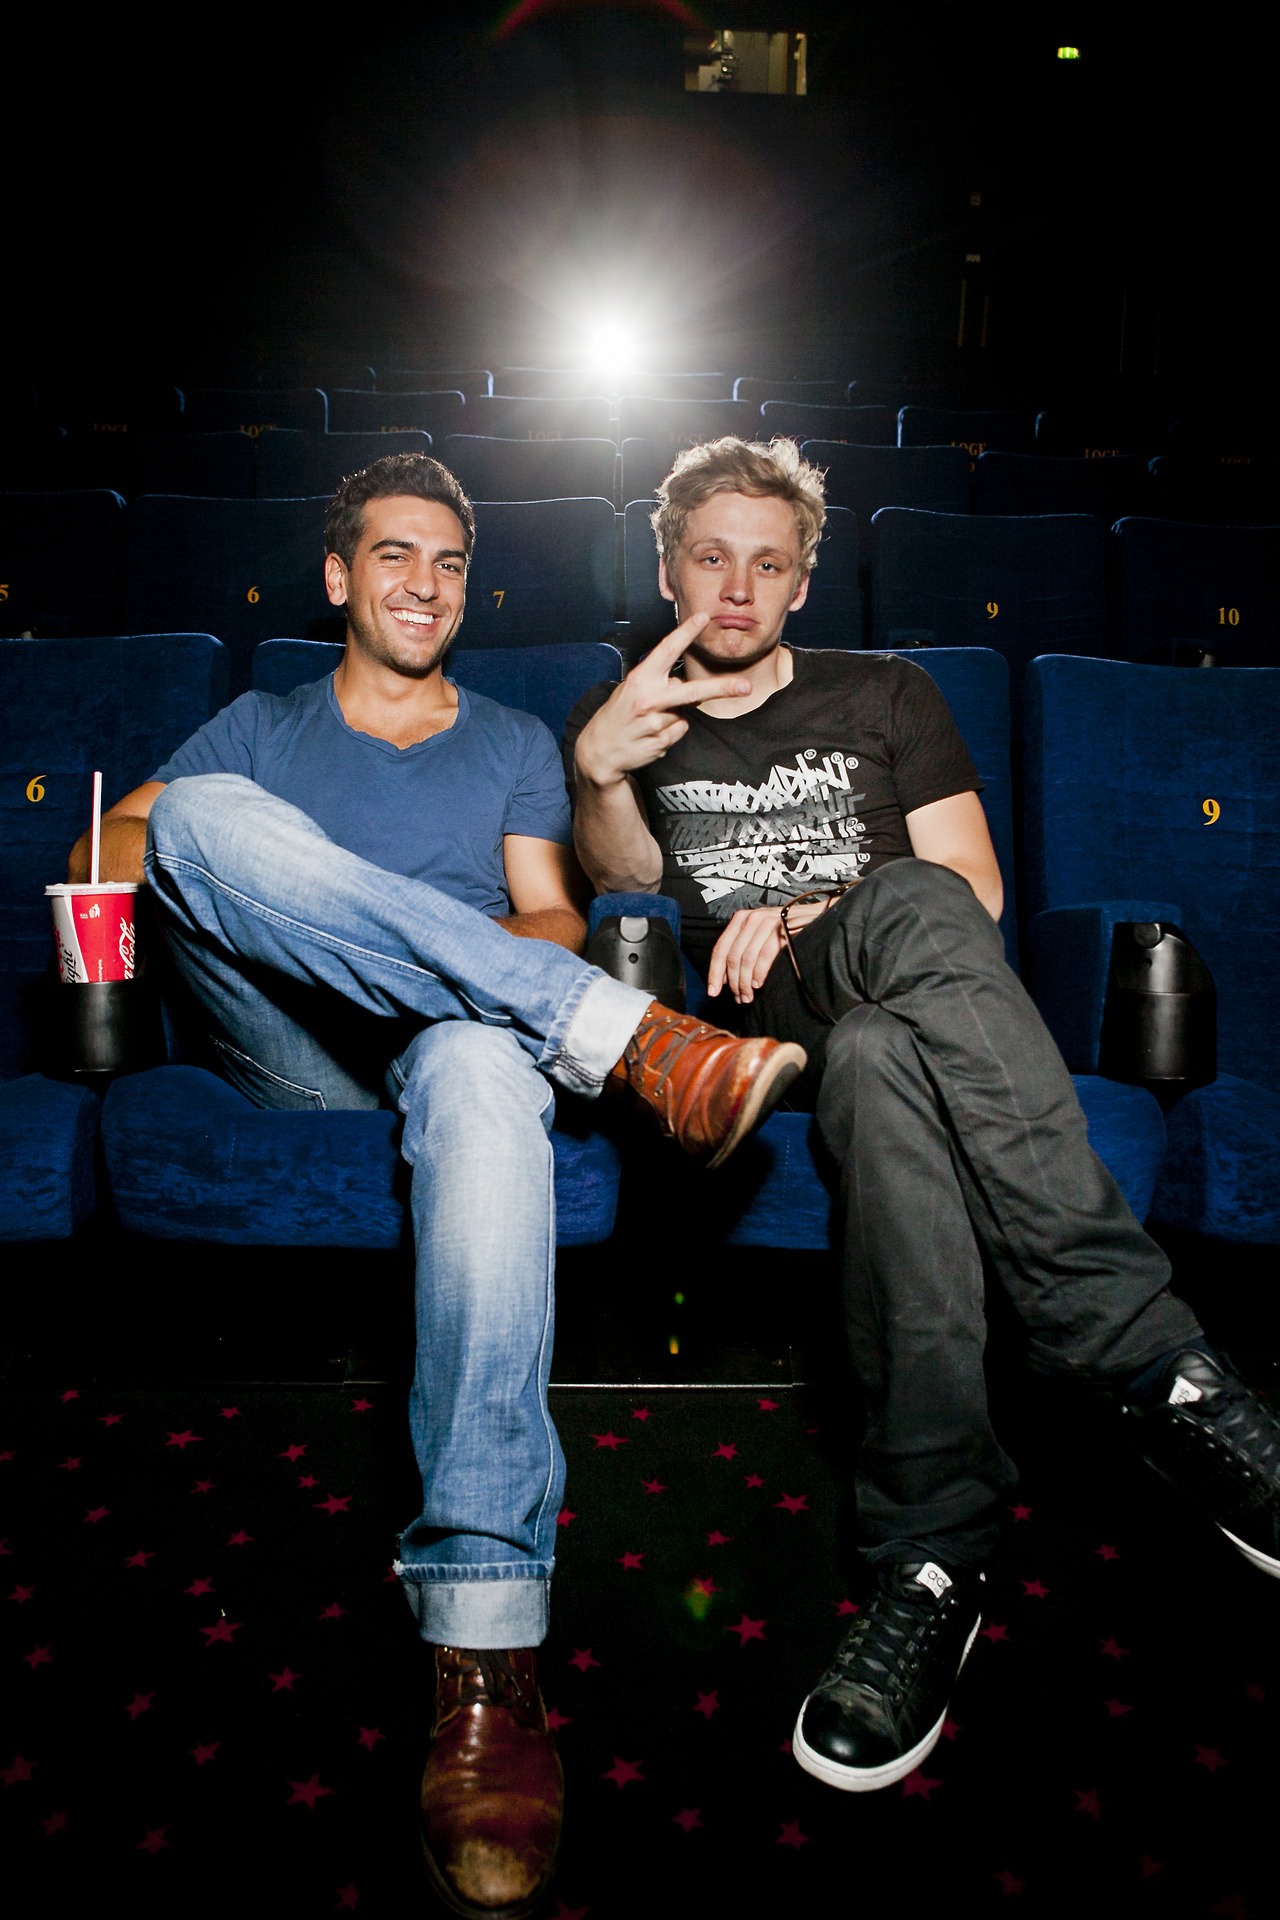 Elyas M'Barek and Matthias Schweighöfer in Bremen 2011. Doing a cinema tour for your own movie sure must be tyring…